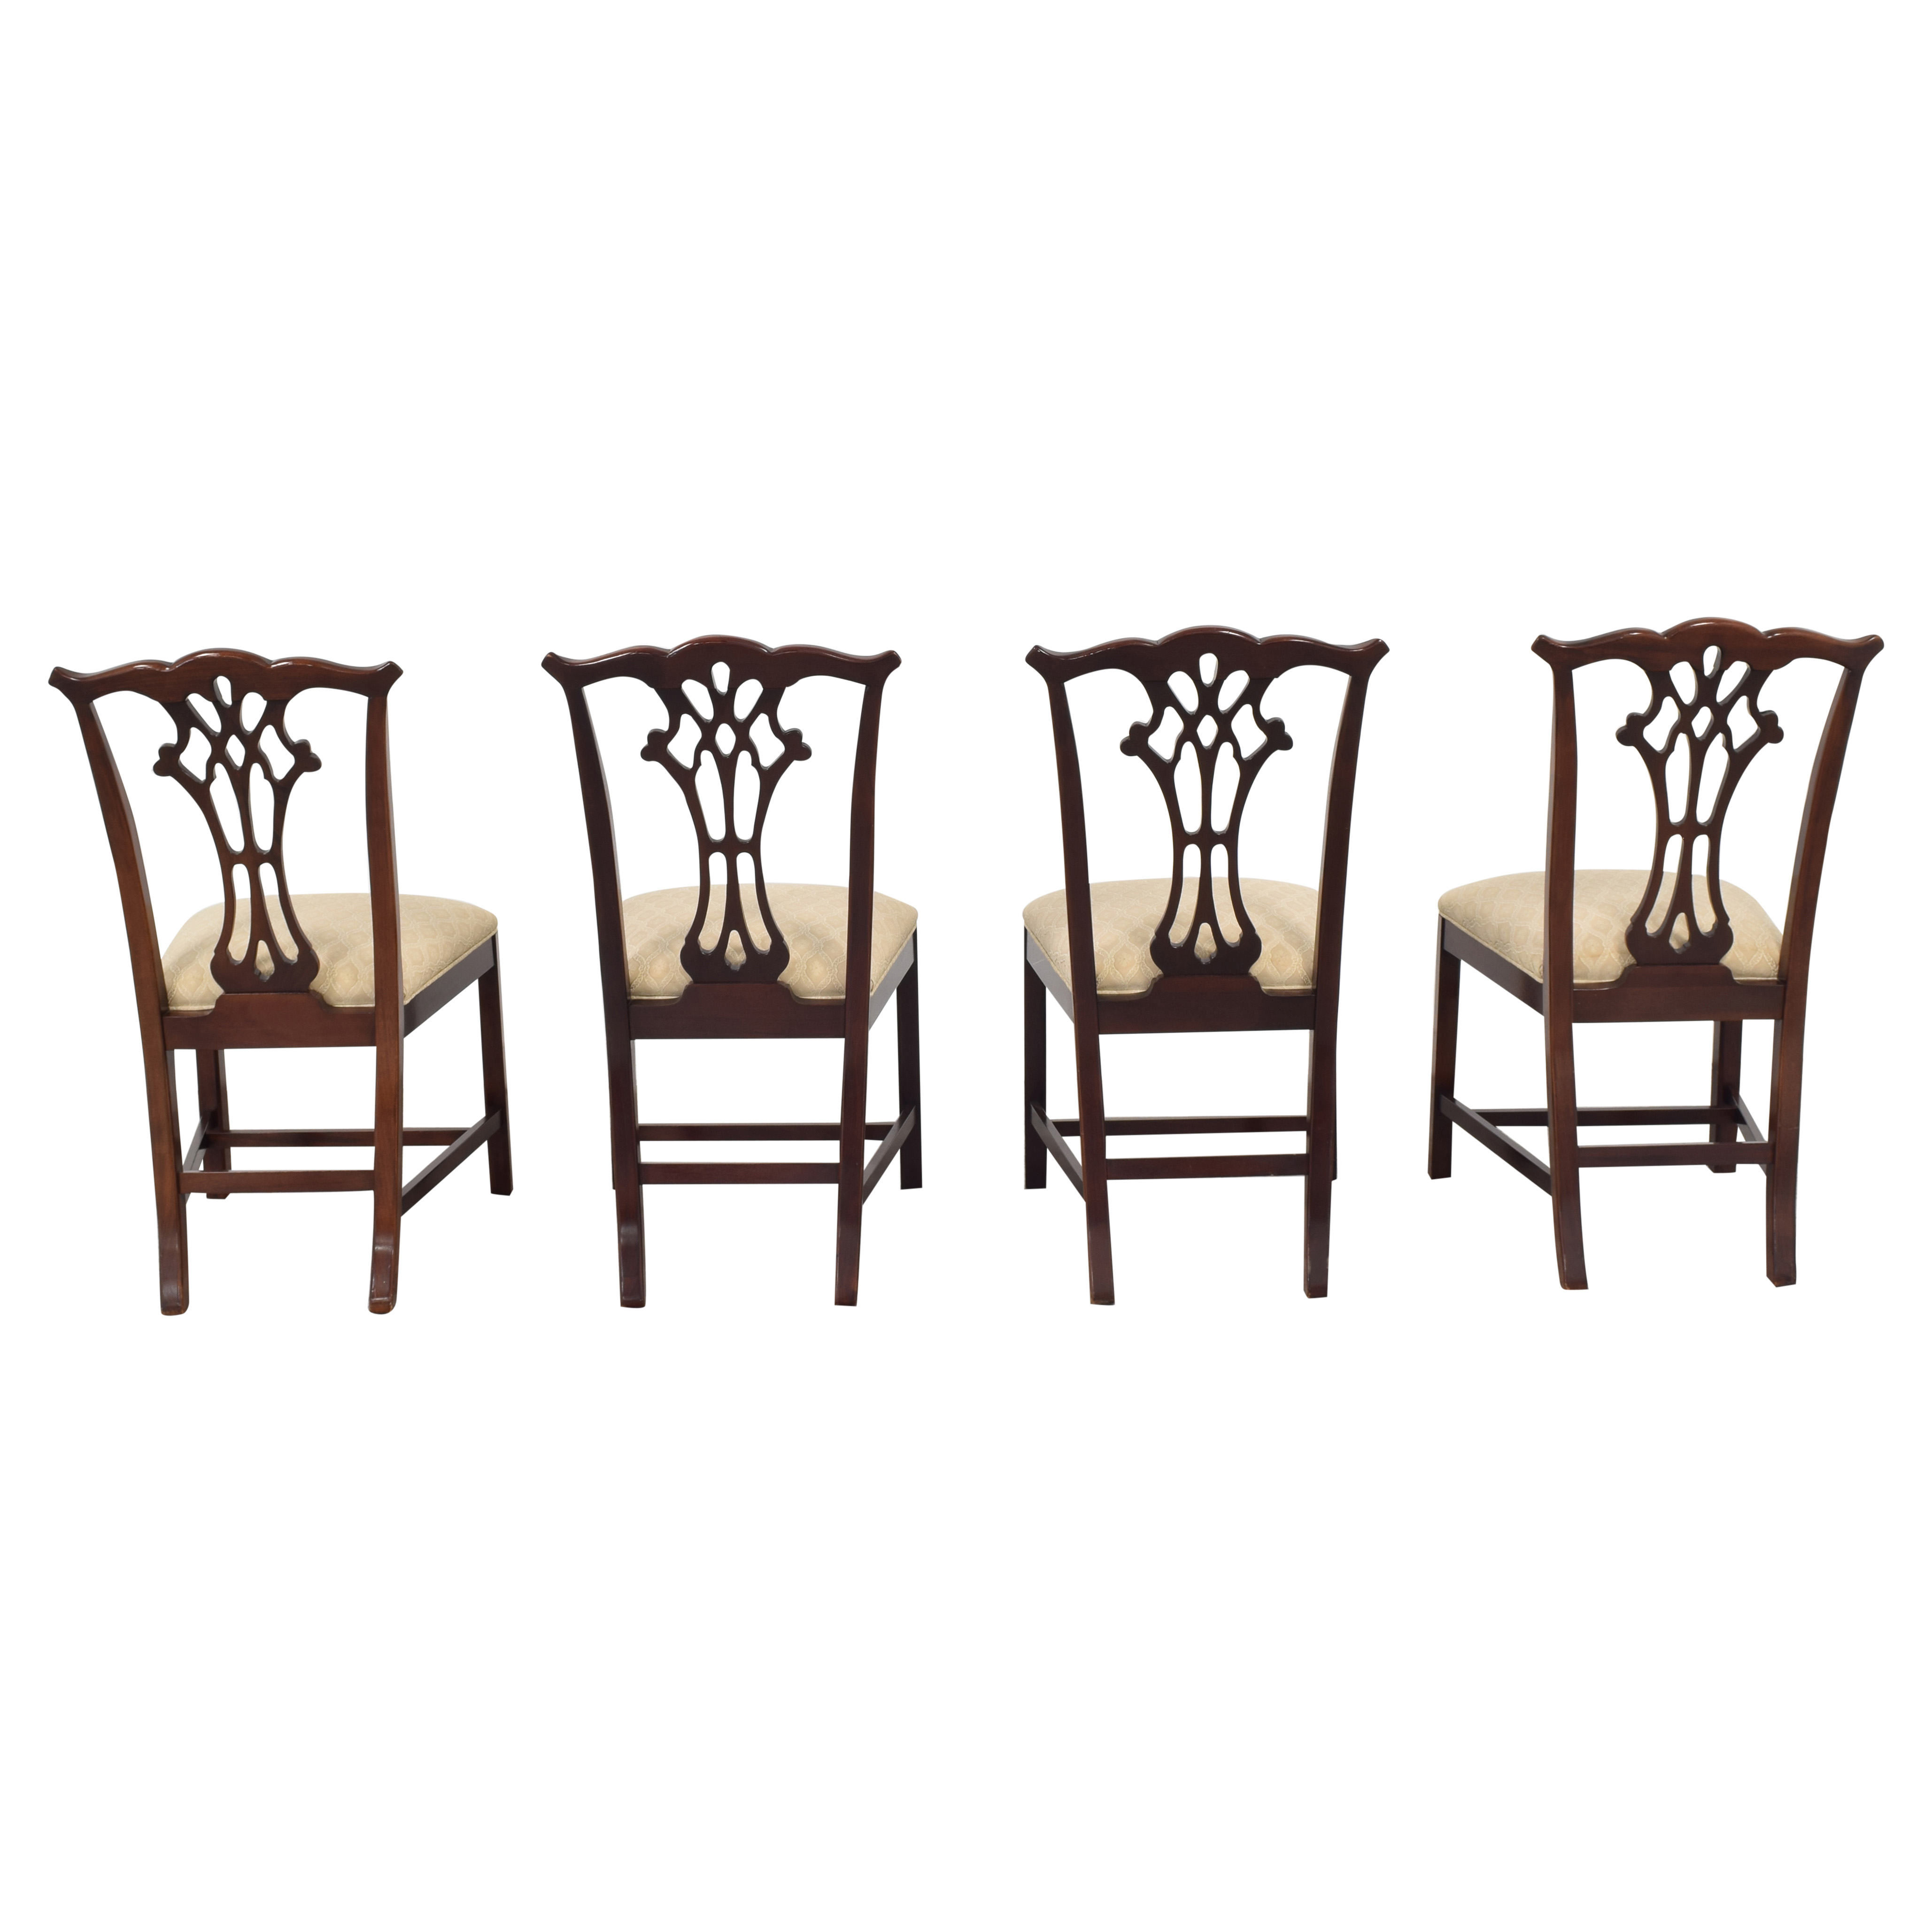 buy Hickory White Chippendale Dining Chairs Hickory White Dining Chairs